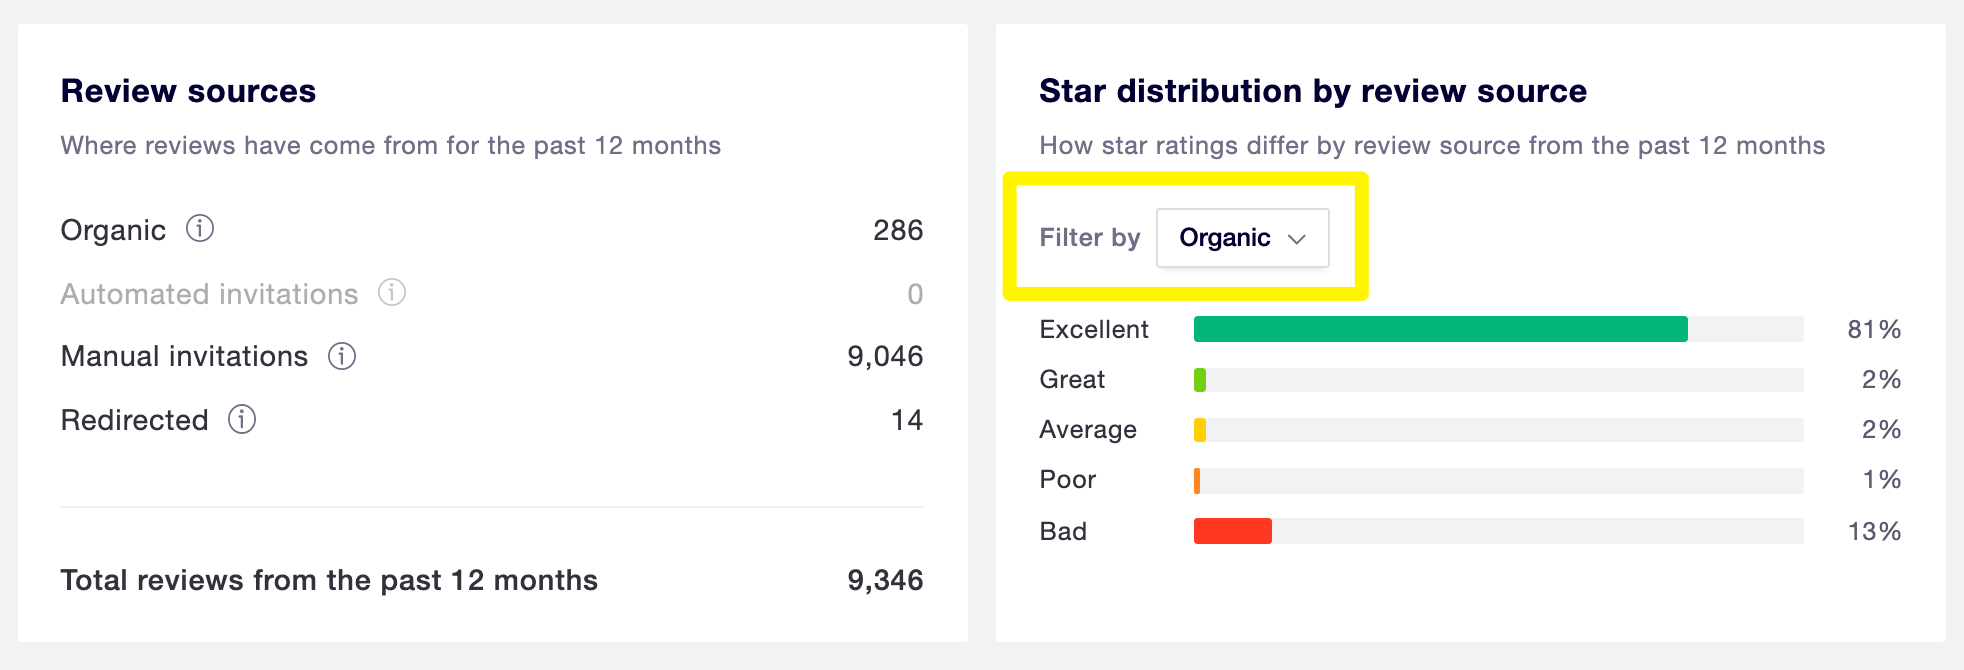 Viewing organic reviews on Trustpilot.